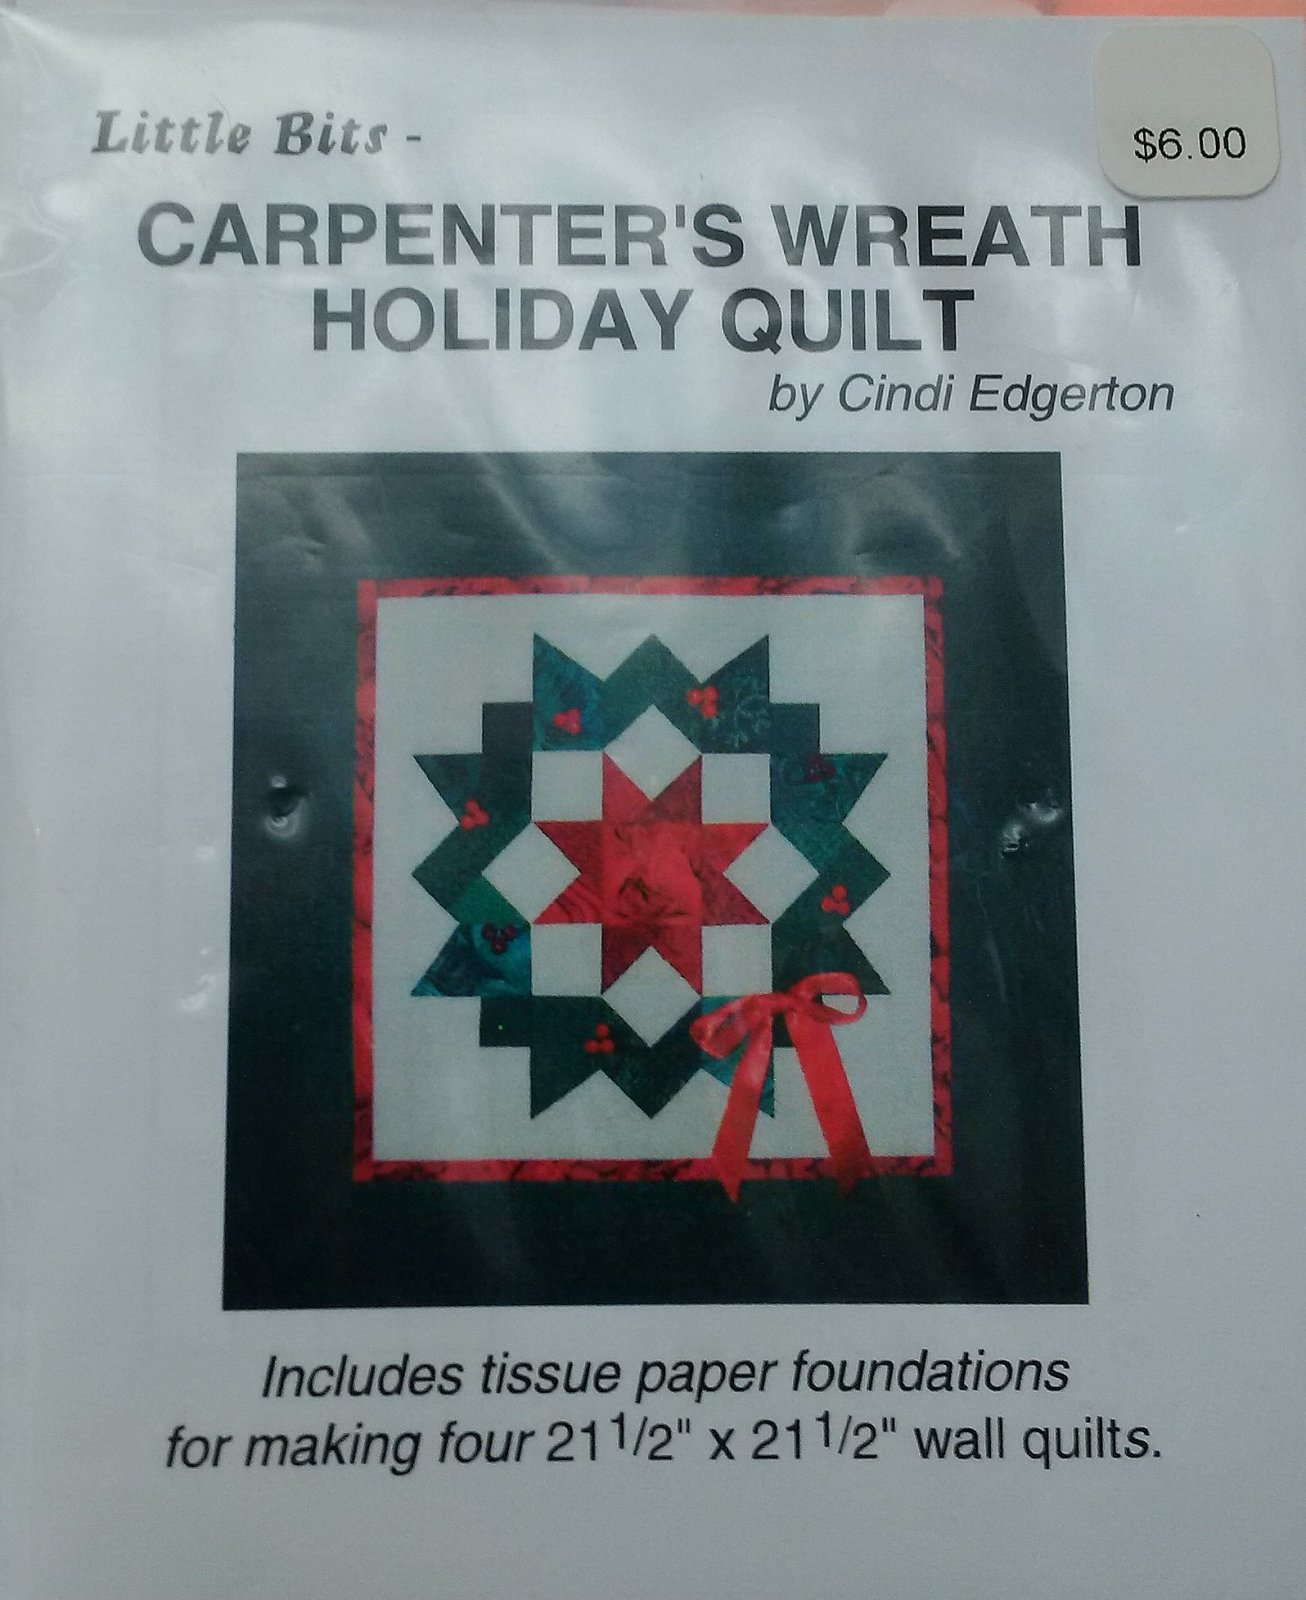 Little Bits Carpenter's Wreath Holiday Quilt Pattern